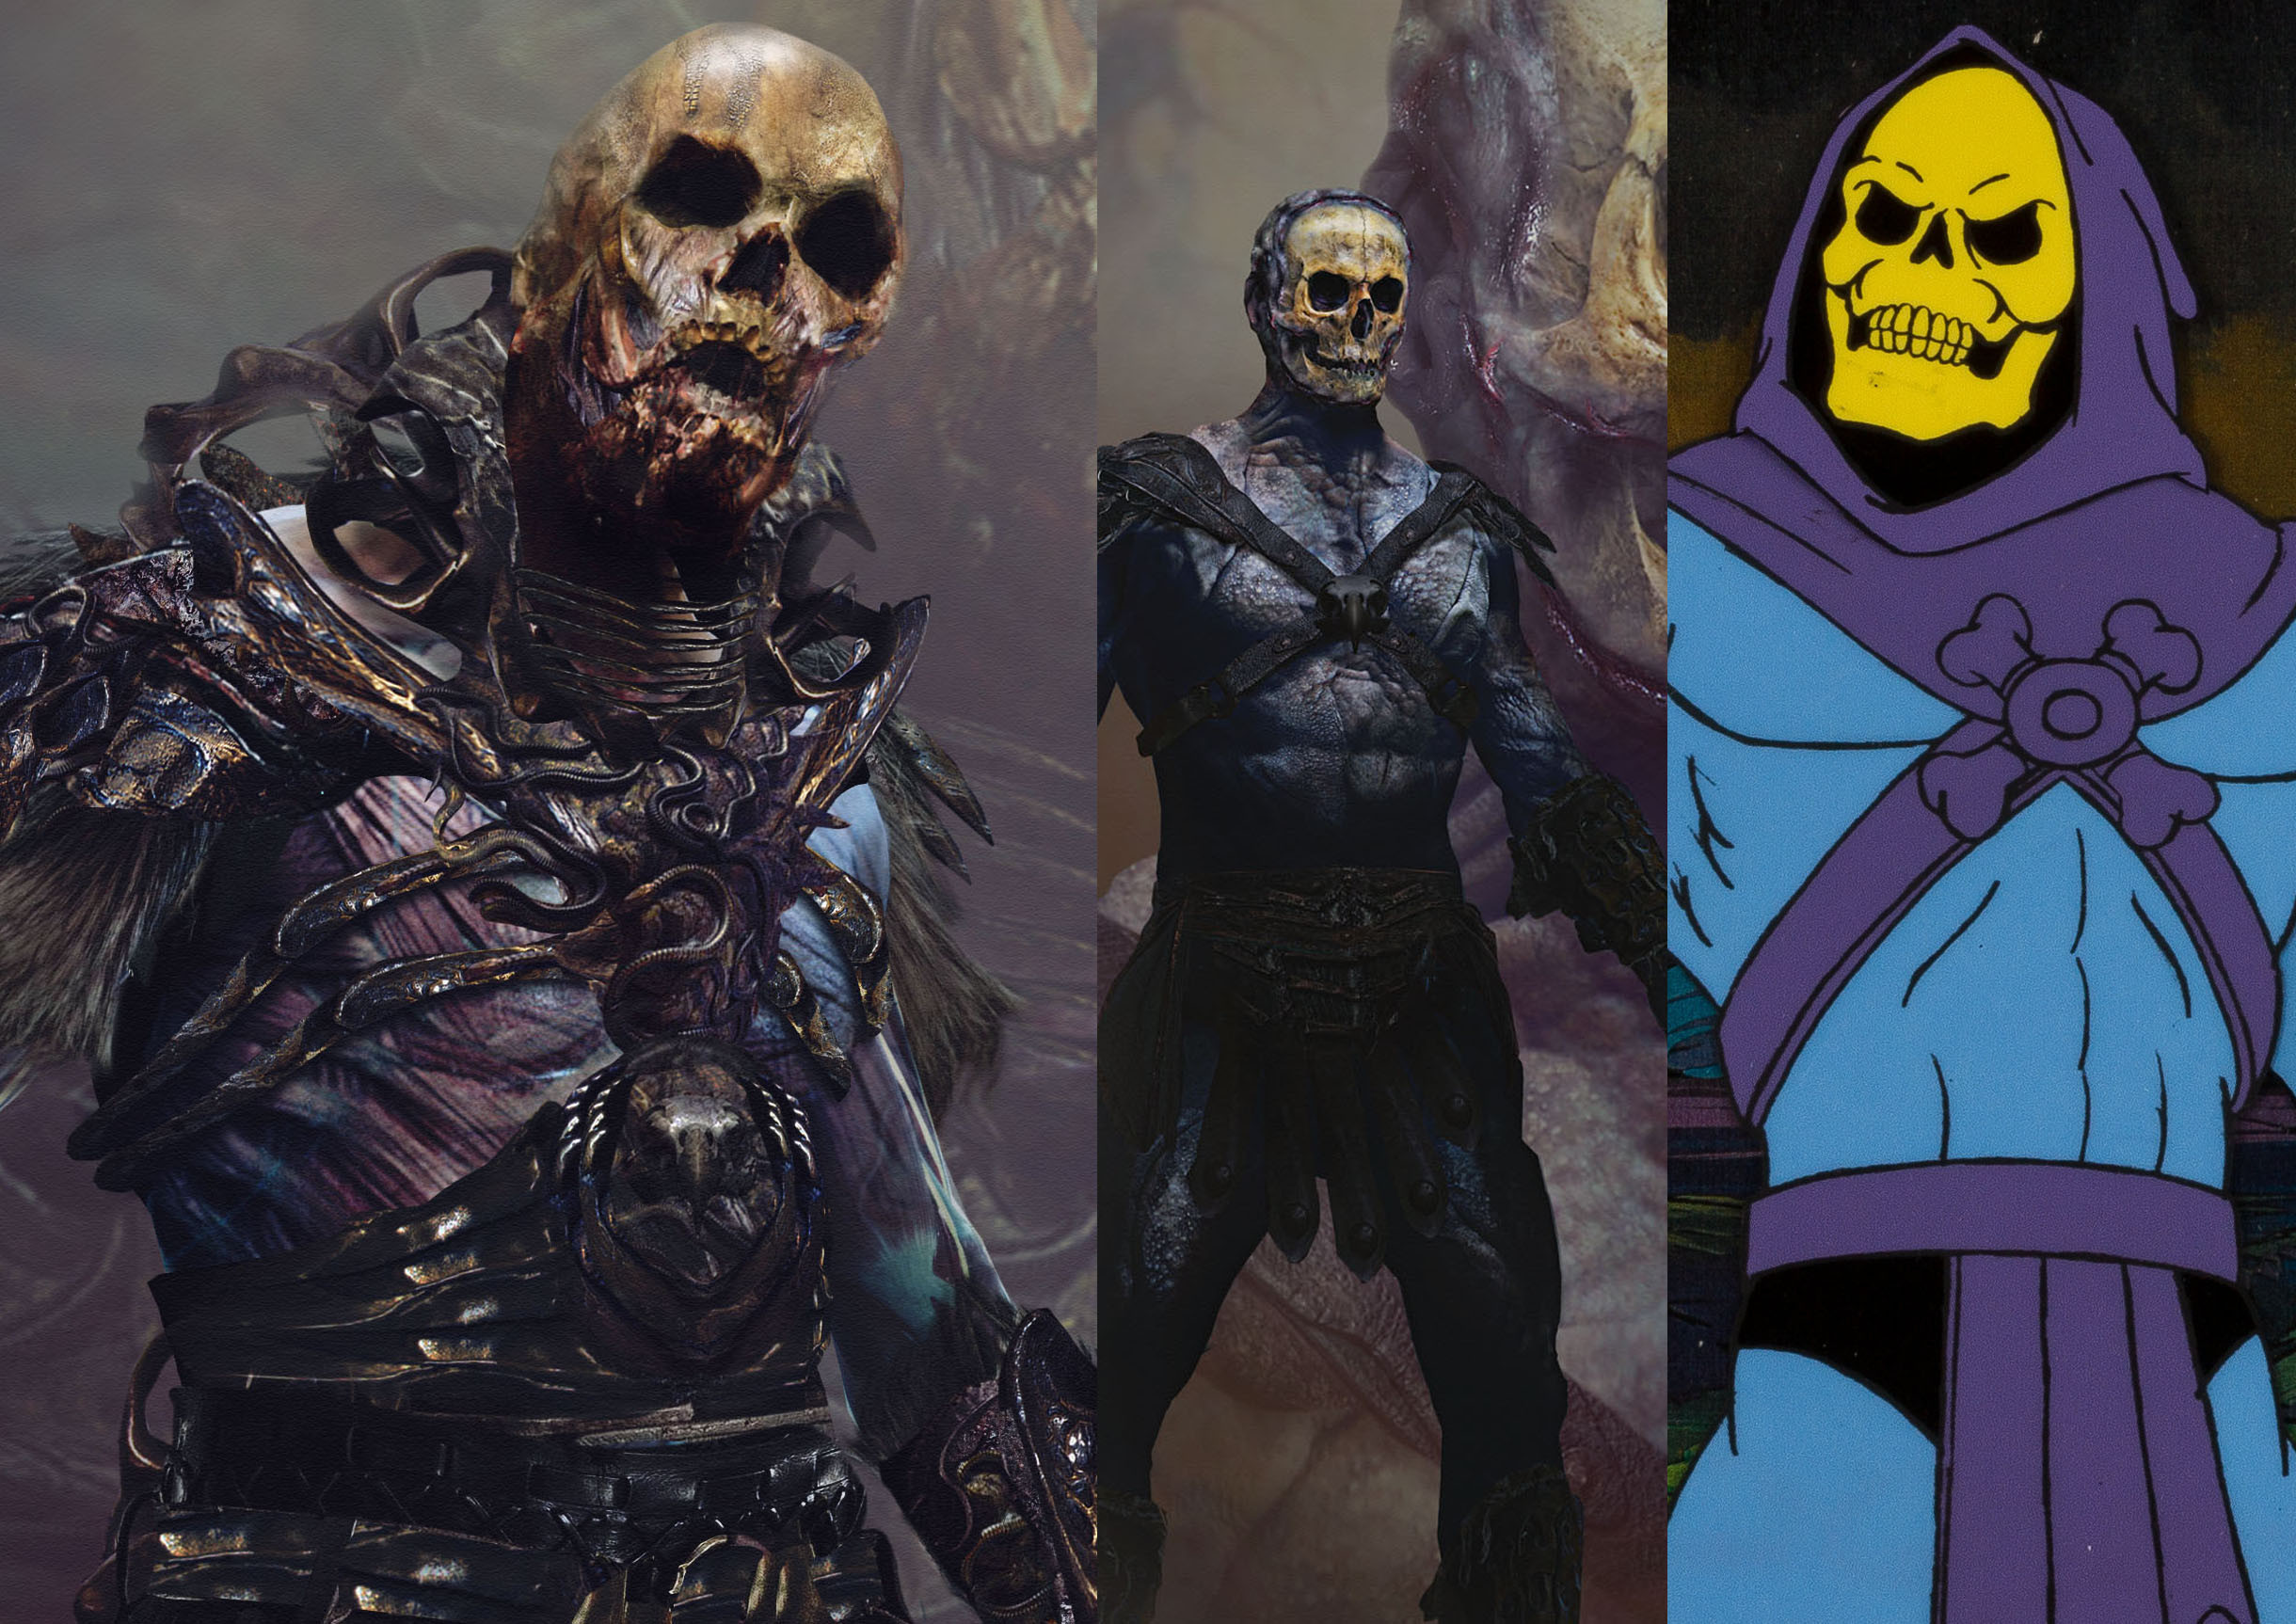 Skeletor from Masters of the Universe